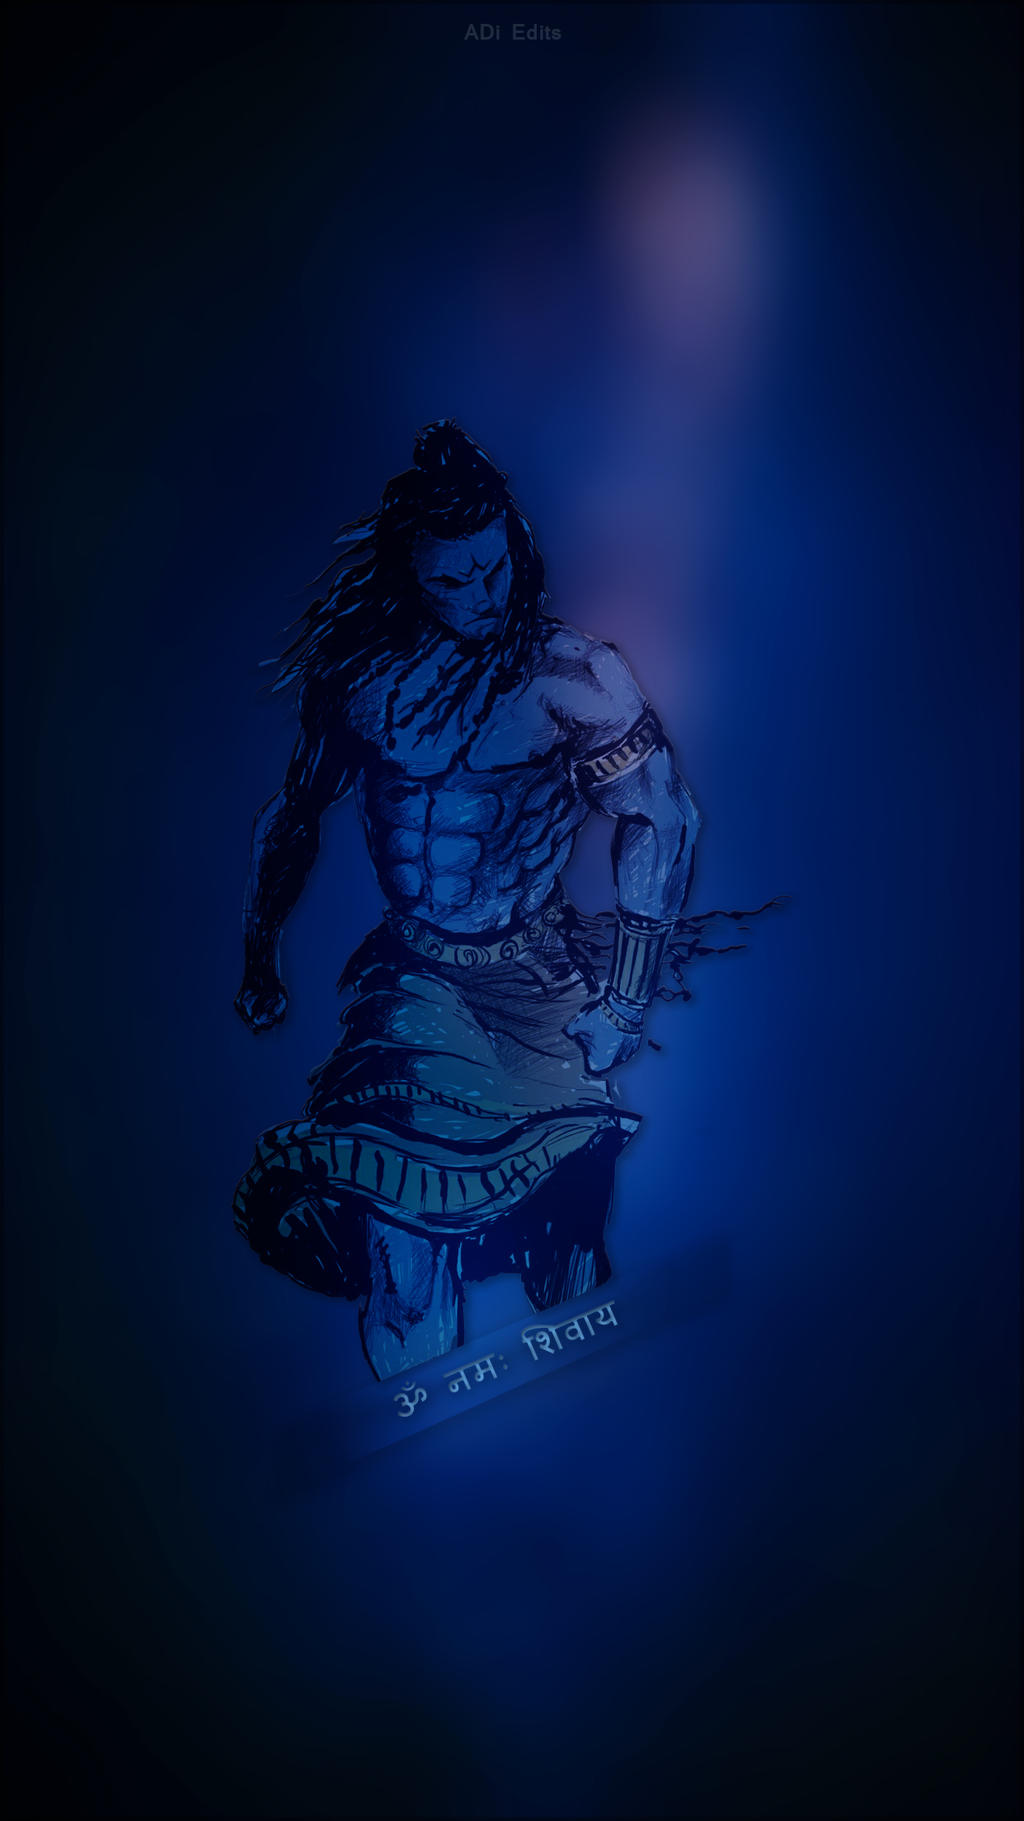 Lord Shiva Mobile Wallpaper by adi-149 on DeviantArt